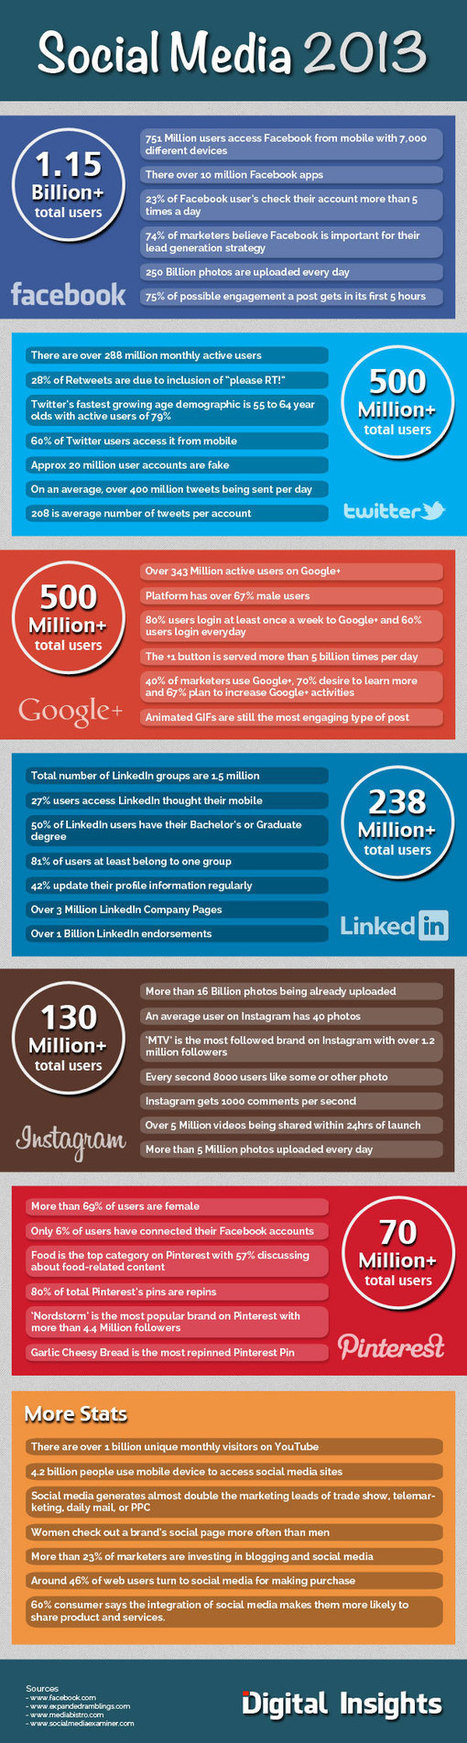 45 Amazing Social Media Facts of 2013 [Infographic] | Communication design | Scoop.it